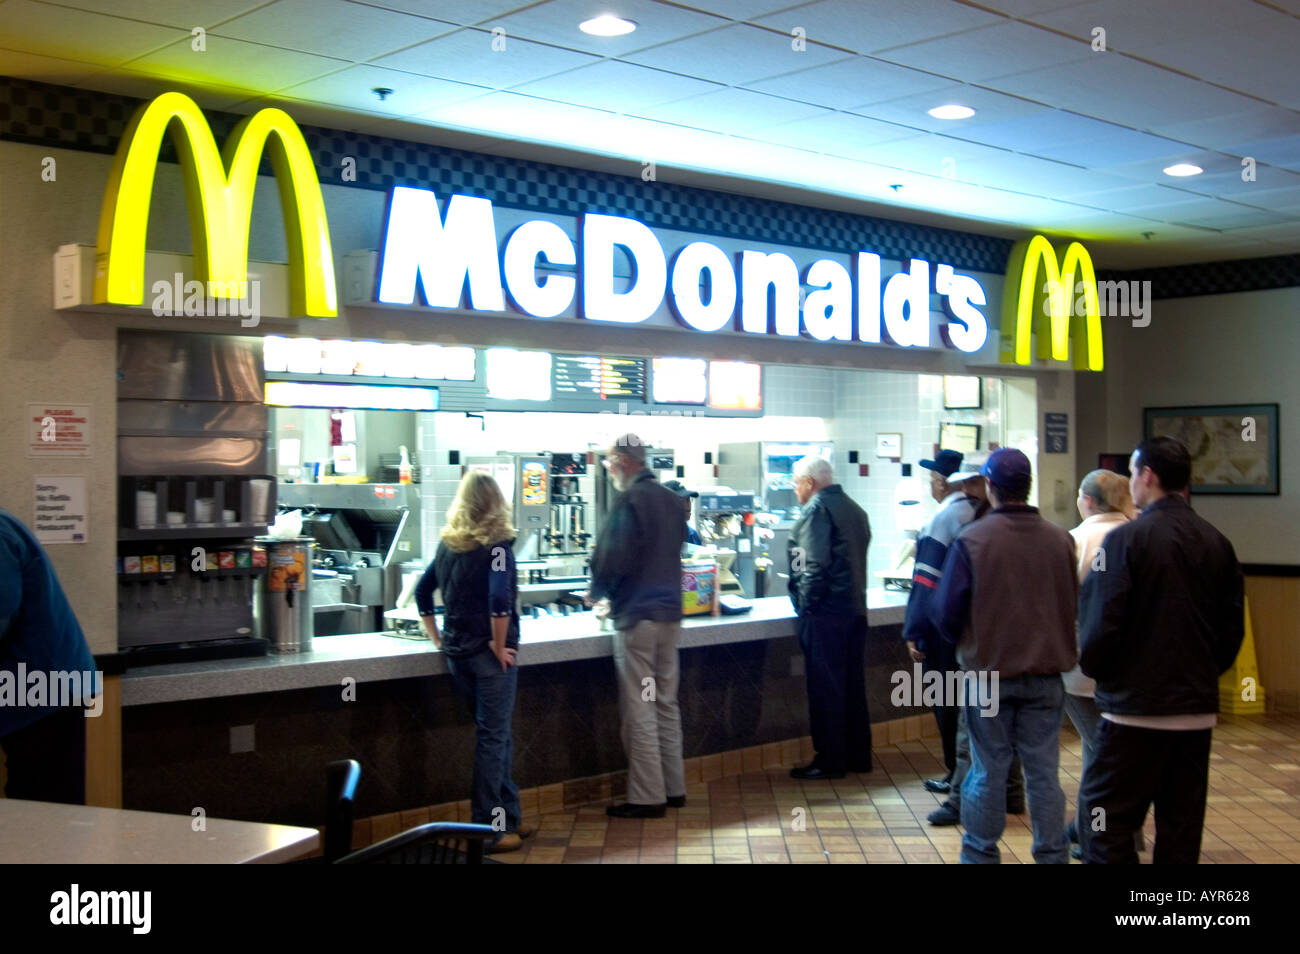 Mc Donald S Stock Photos & Mc Donald S Stock Images - Alamy